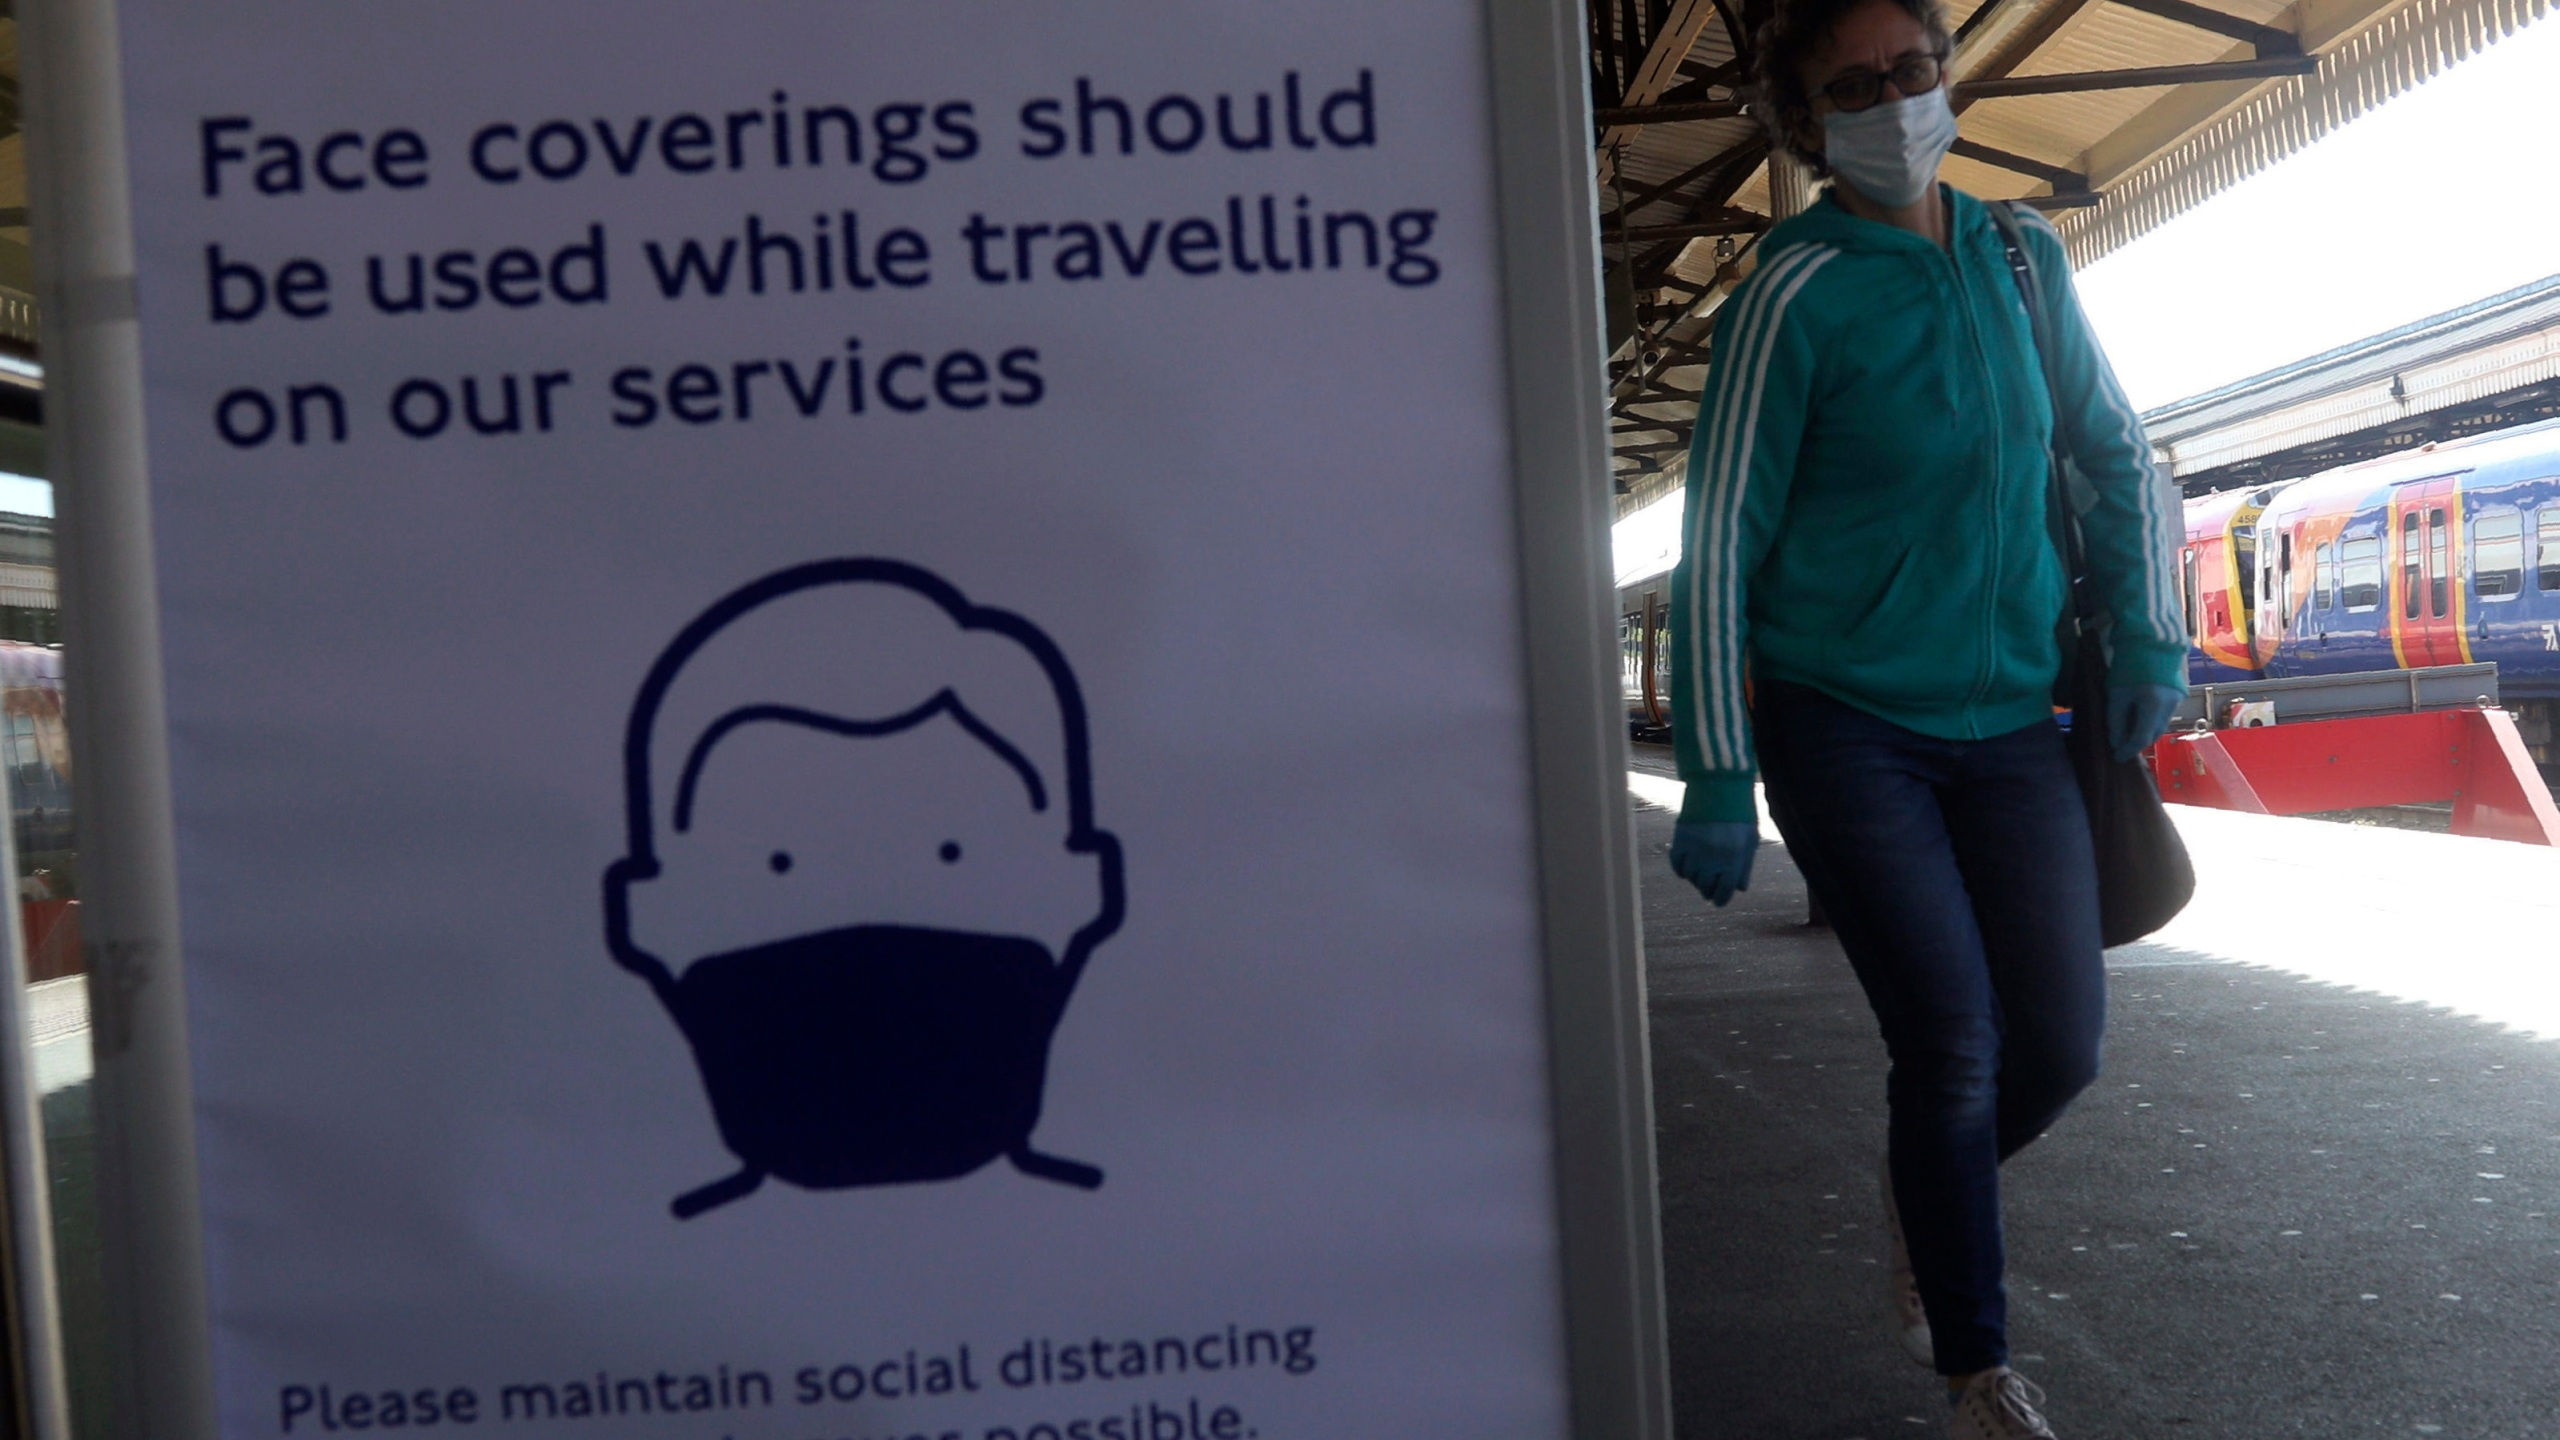 Coronavirus face mask sign in train station